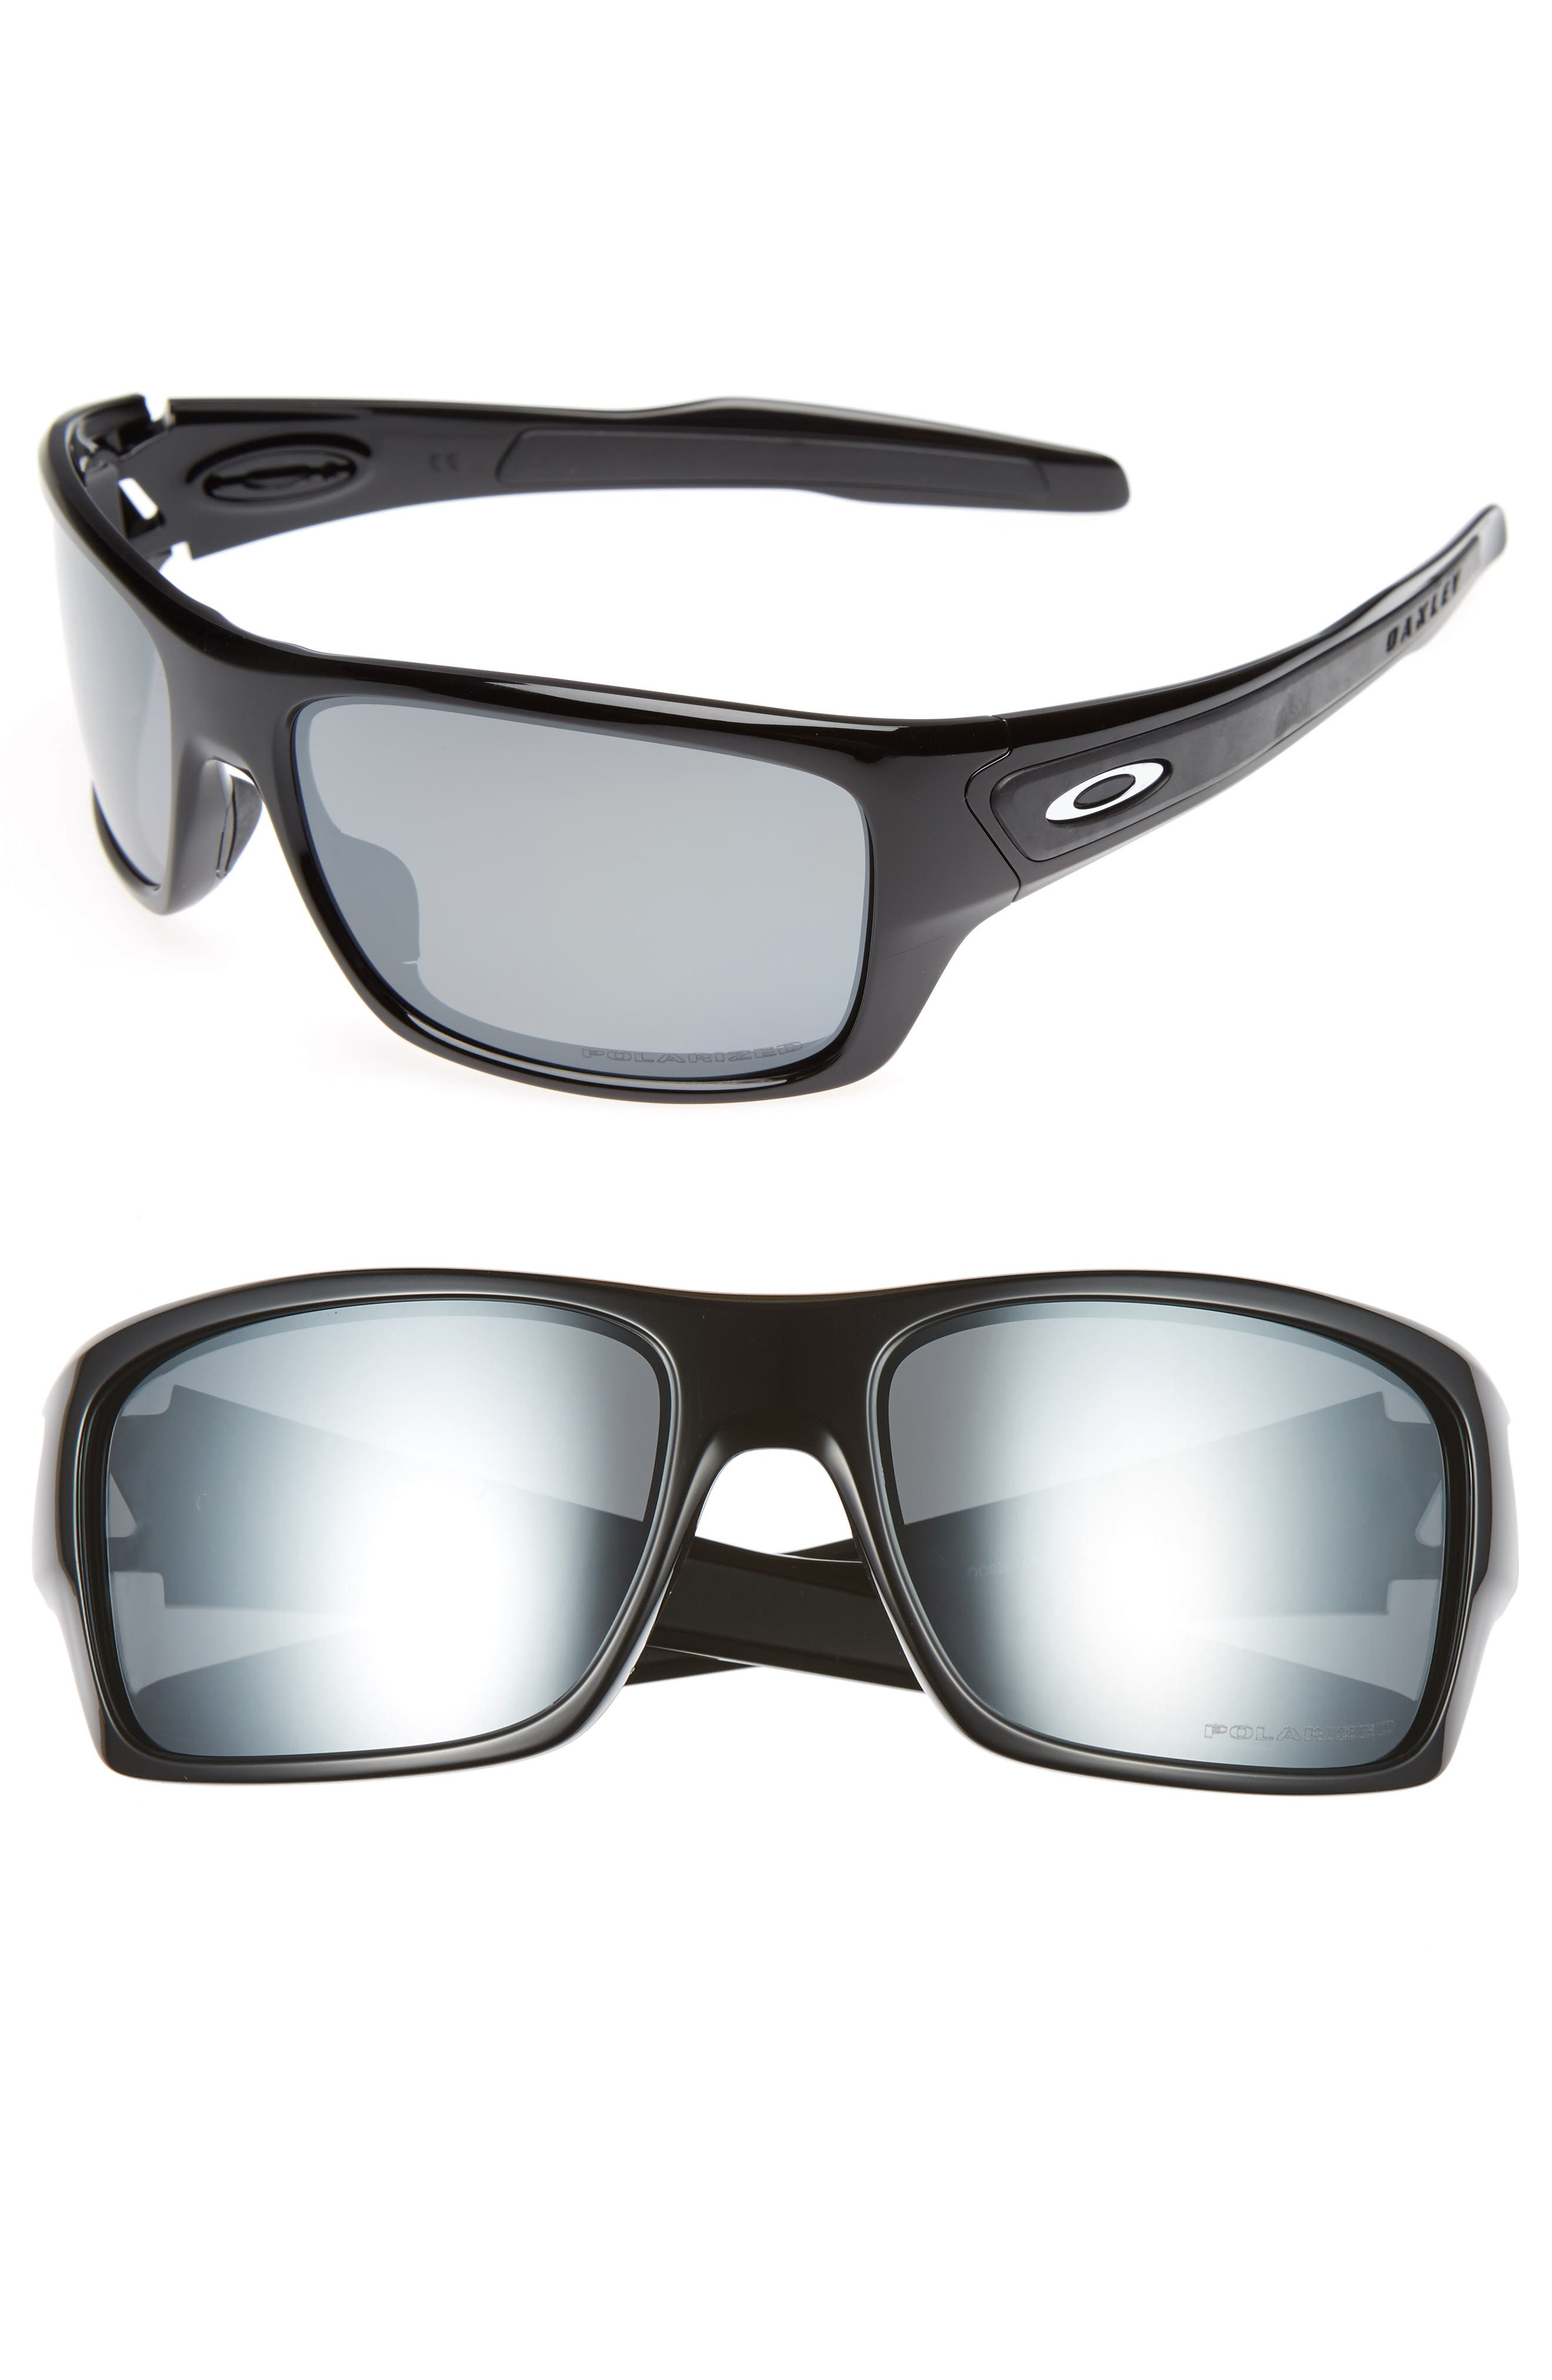 Oakley Turbine 65Mm Polarized Sunglasses -